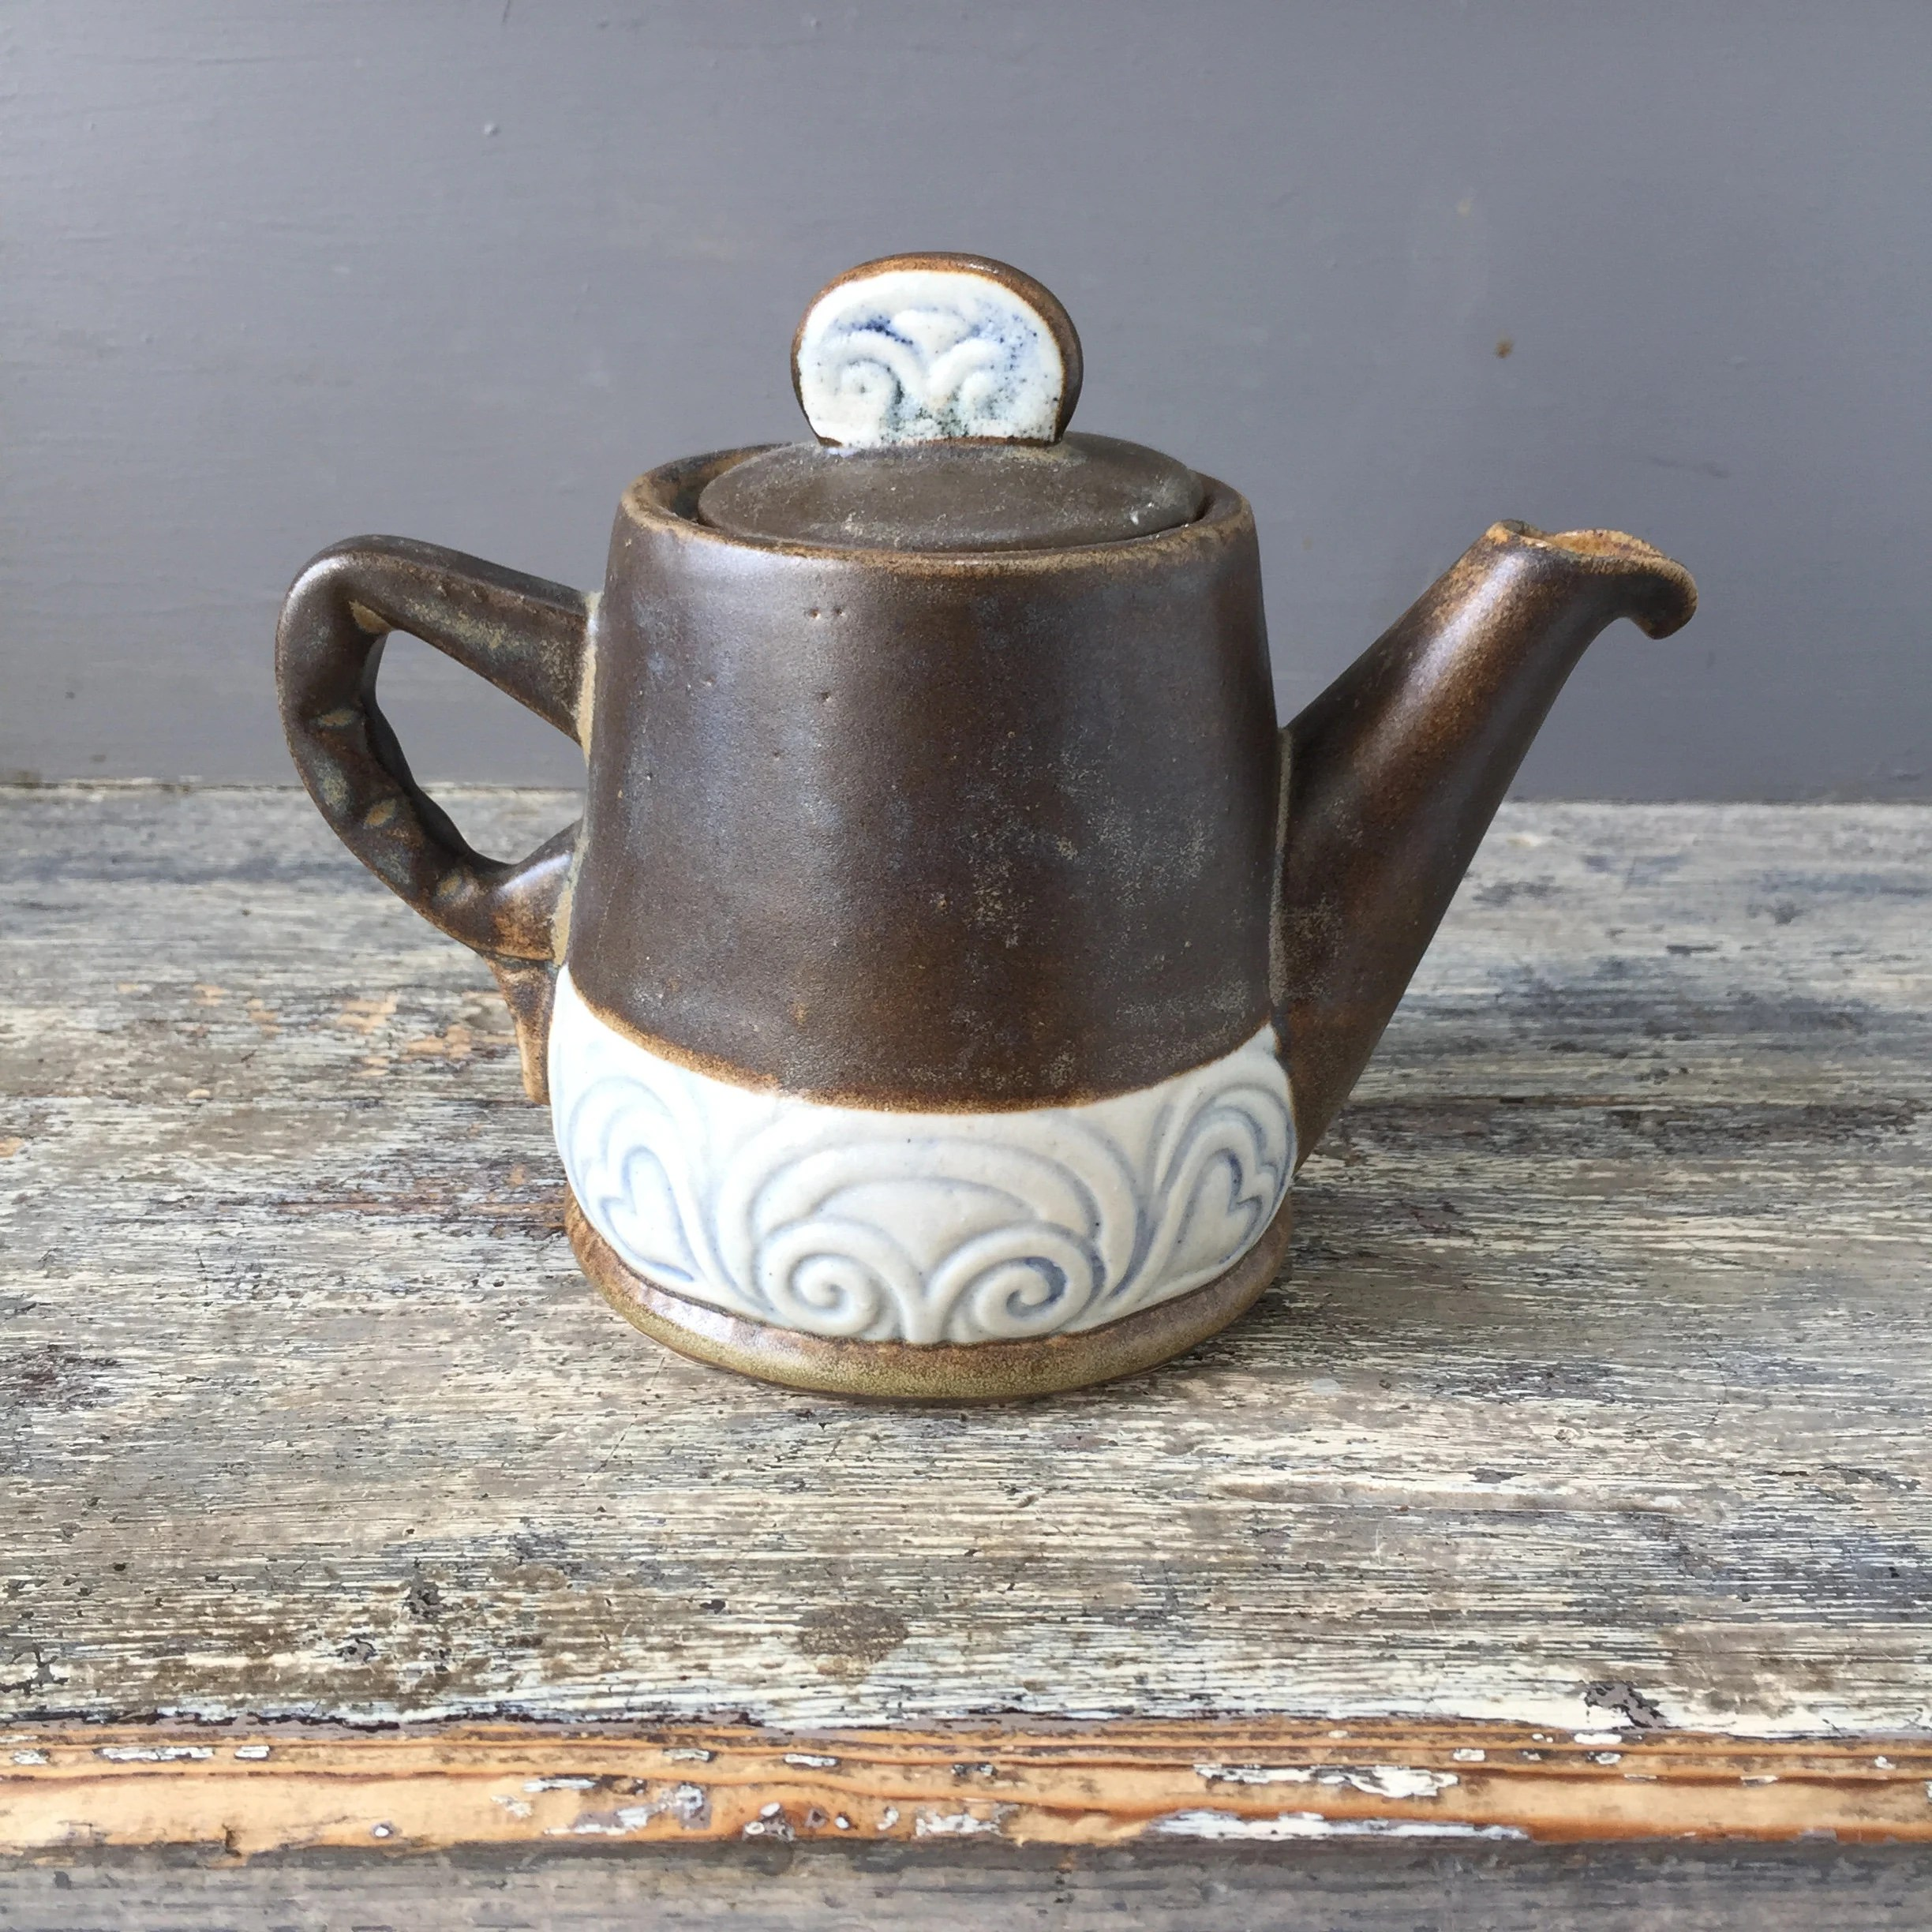 Deco Quimper Rare Beautiful French Vintage Coffee Tea Pot Signed Hb From Brittany France Stoneware With Art Deco Celtic Decor Faience De Quimper 1940 S